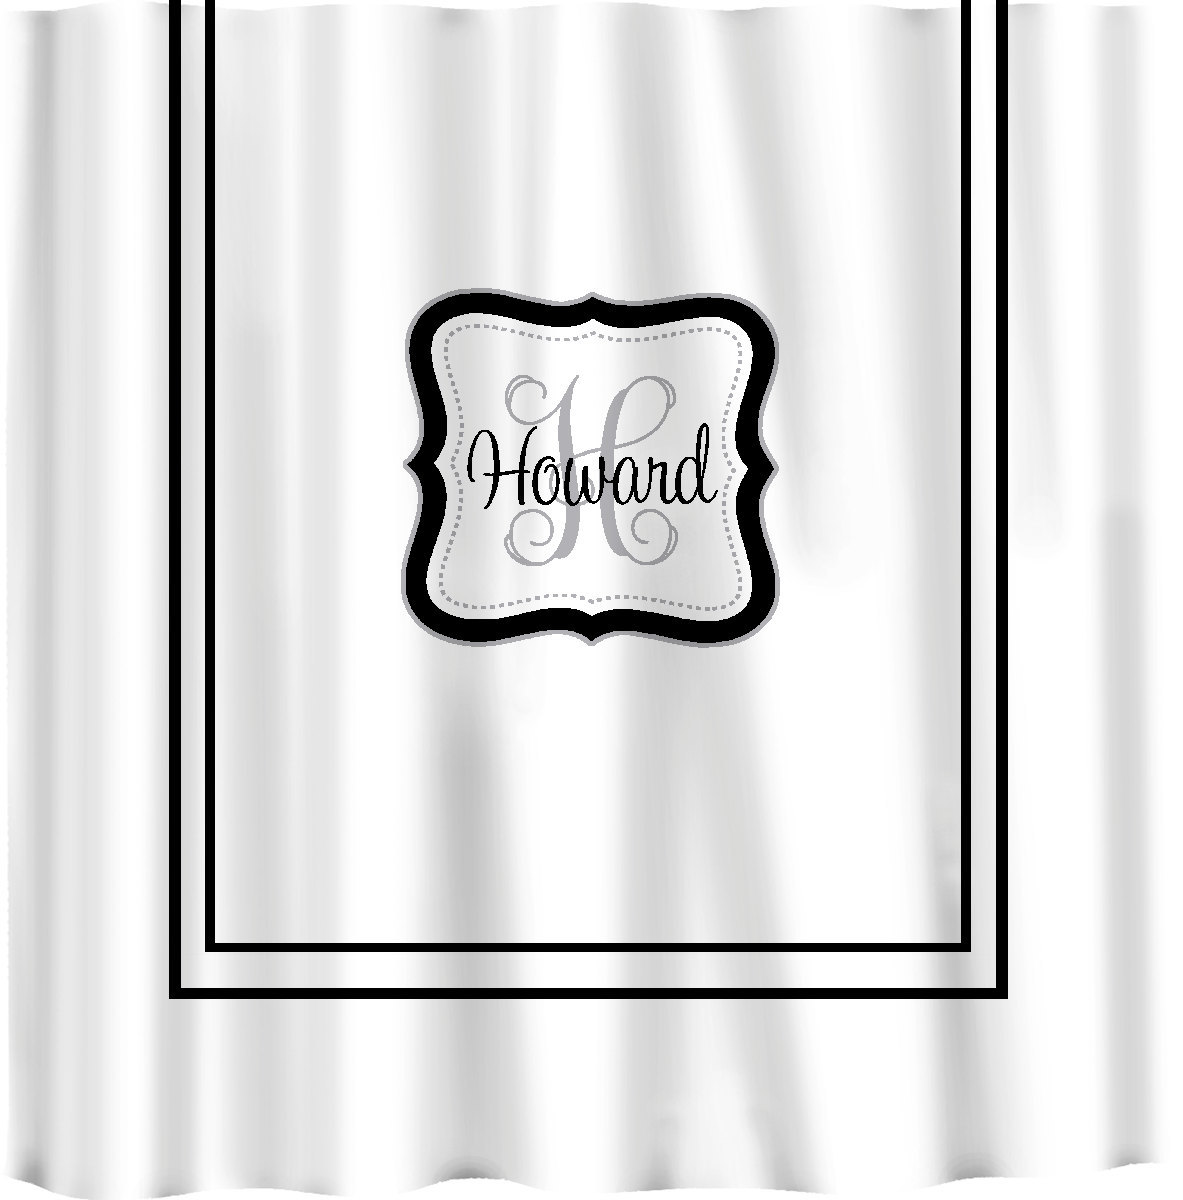 Custom Shower Curtain -Simplicity with monogram in your colors - any color backg